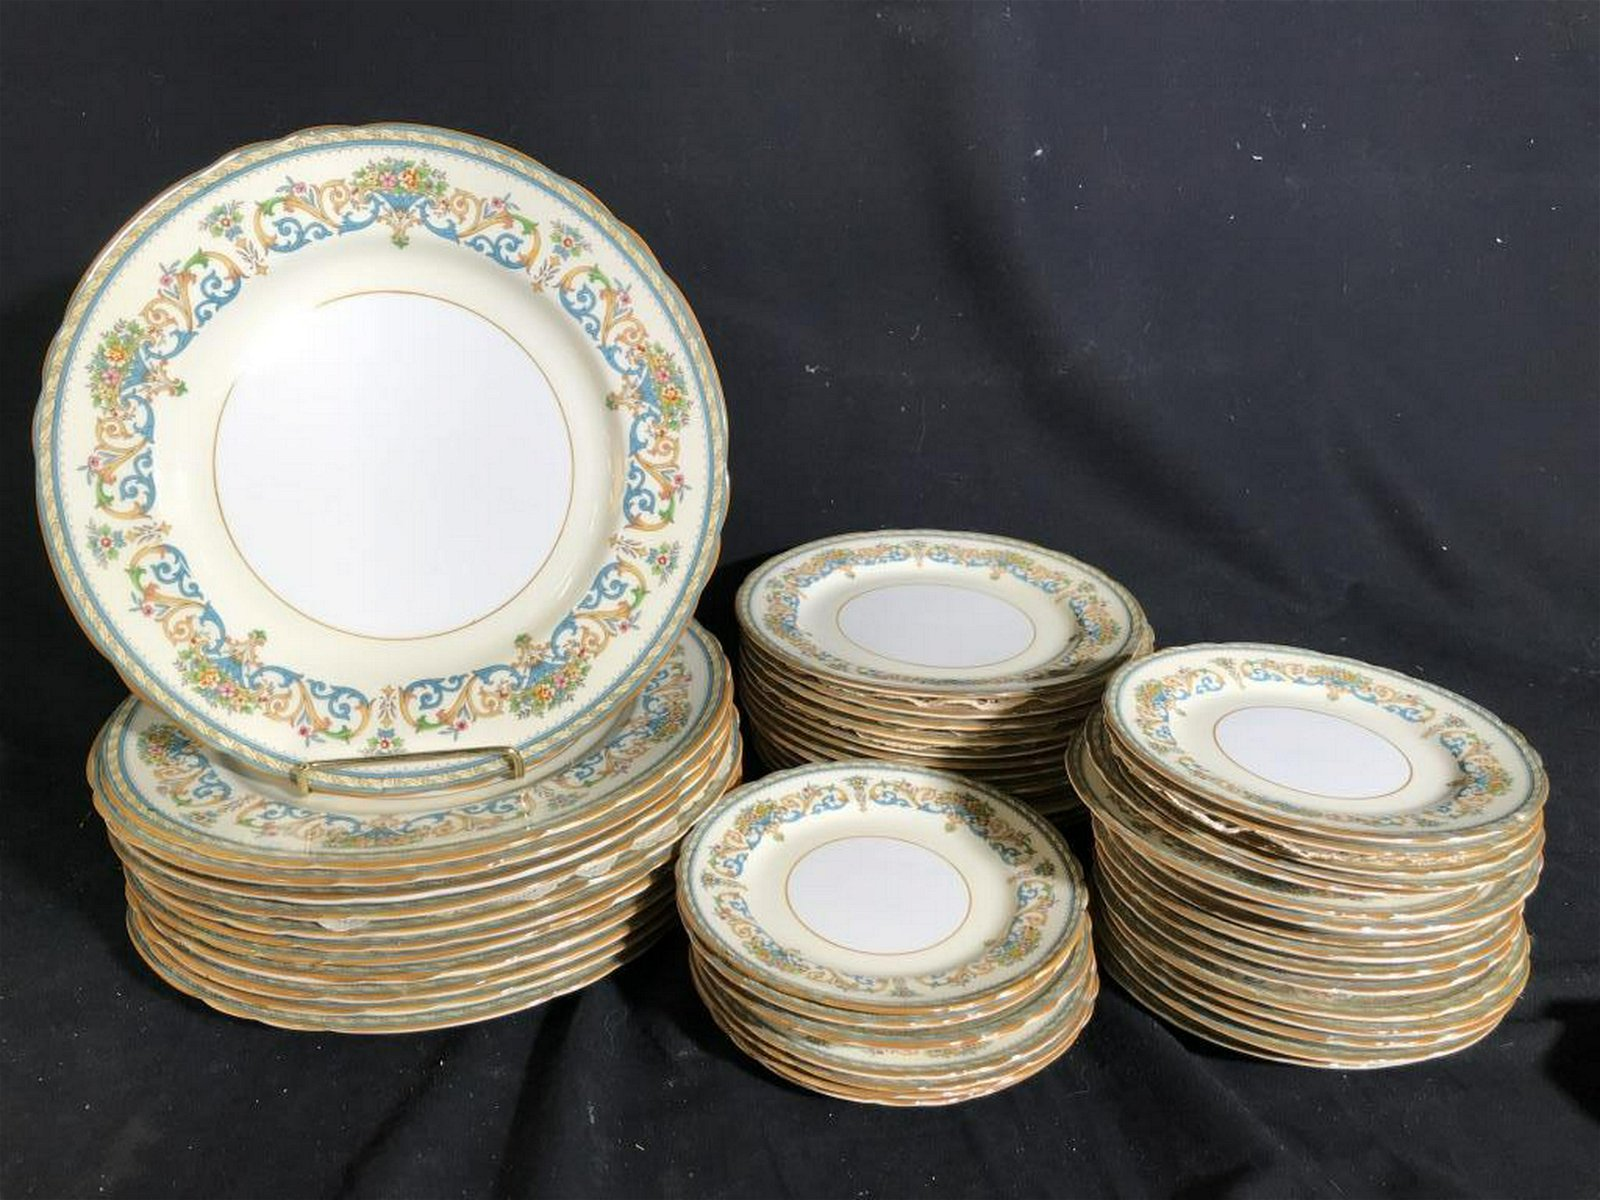 AYNSLEY English Bone China Place Settings Also reads